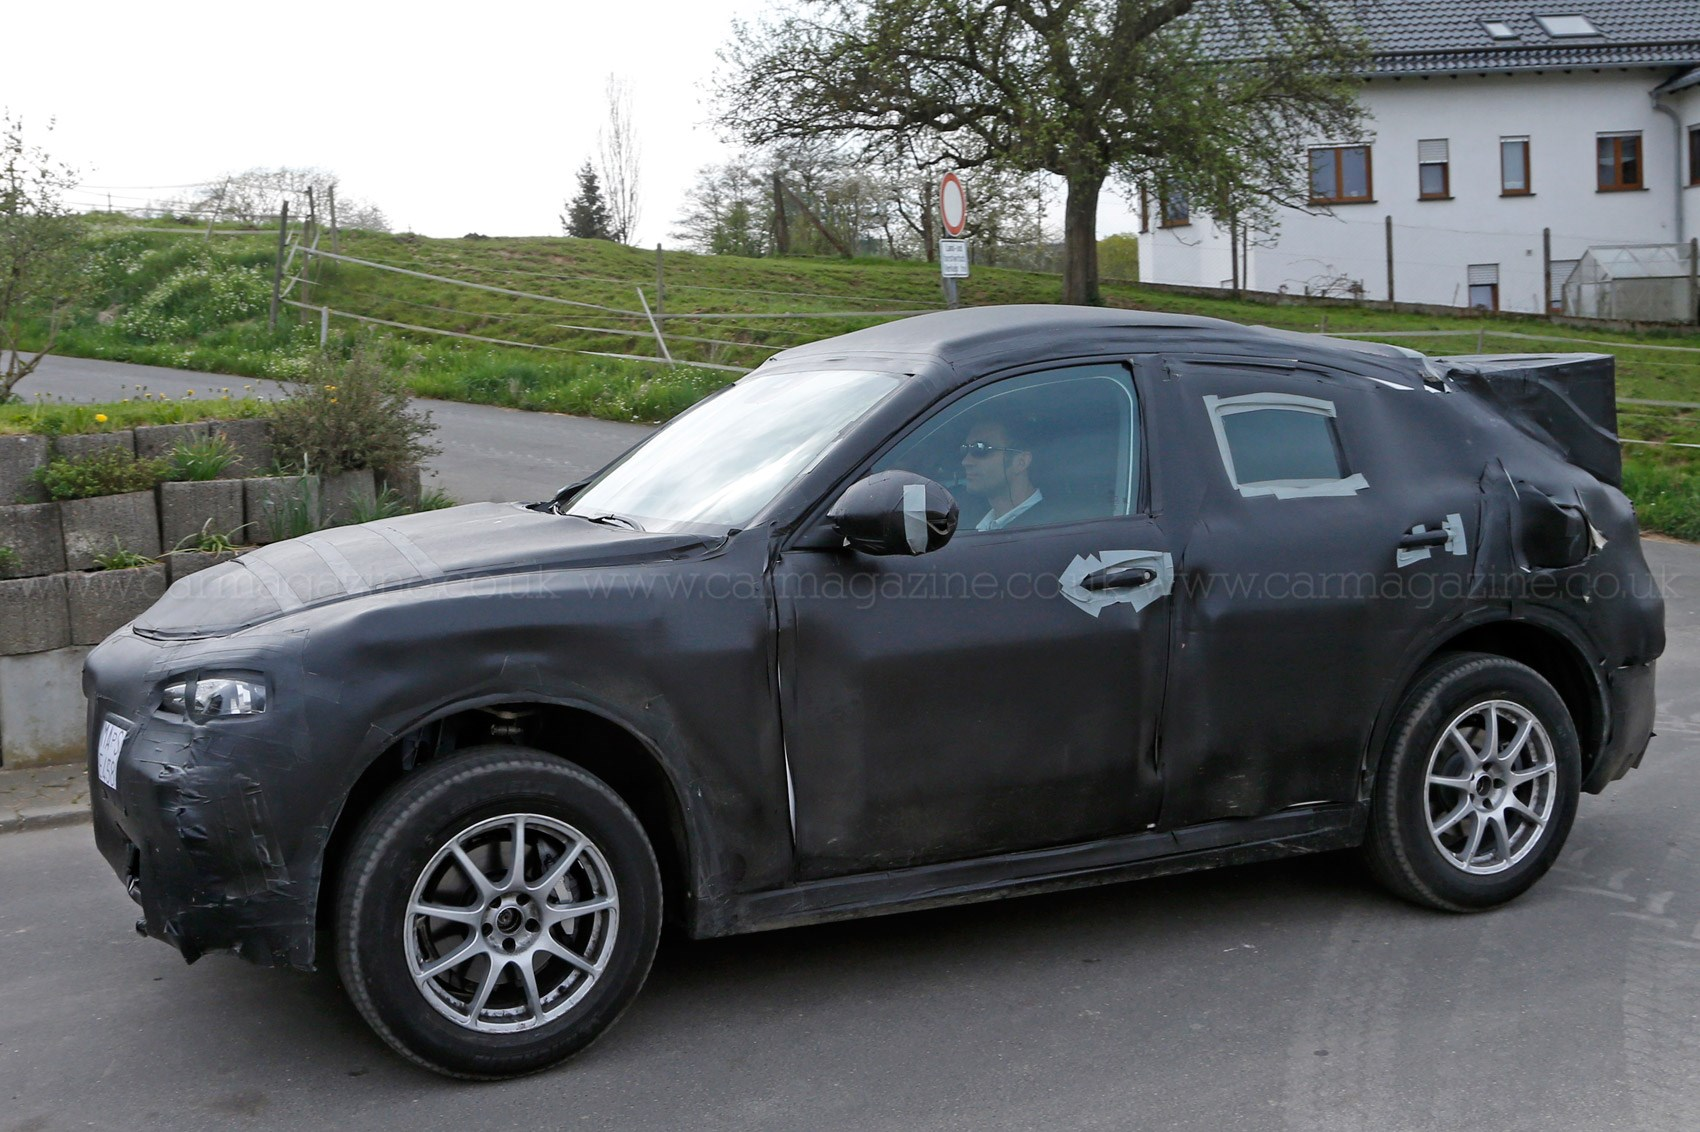 stelvio makes a pass alfa romeo suv prototype spotted by car magazine. Black Bedroom Furniture Sets. Home Design Ideas